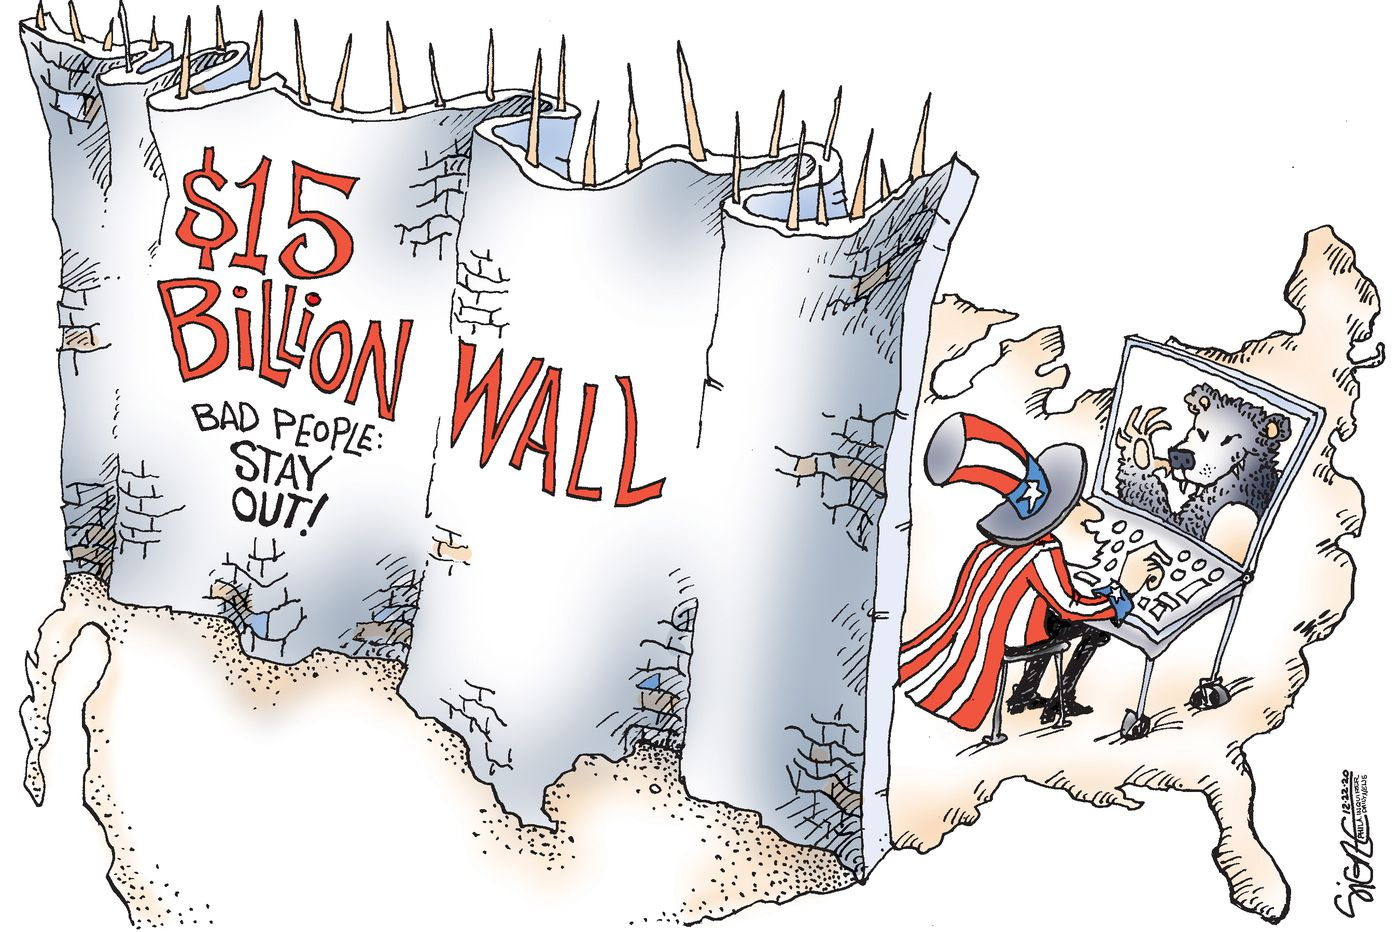 Political Cartoon: Wall out those cyber hackers